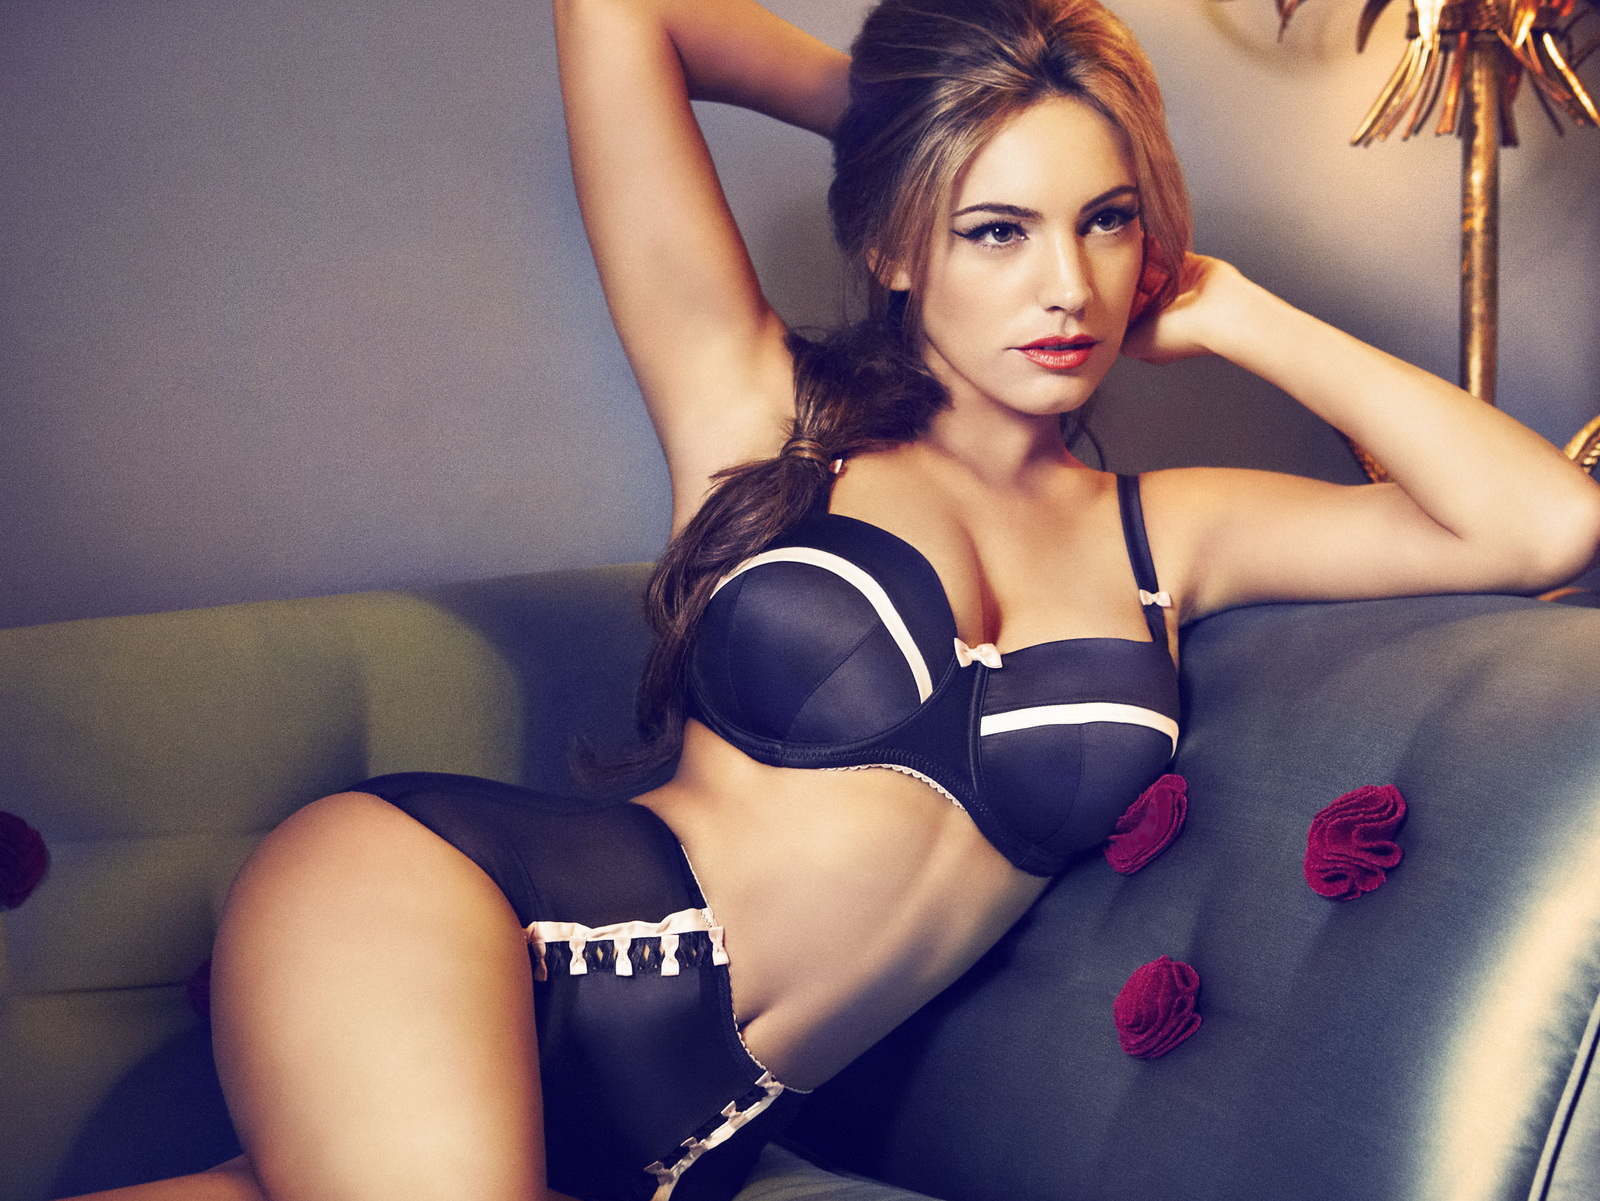 http://4.bp.blogspot.com/-uQCUC0umH2o/TxamT7ReZmI/AAAAAAAADdc/8idhToGduUQ/s1600/Kelly_Brook_sexy_in_New_Look_lingerie_photoshoot_2.jpg